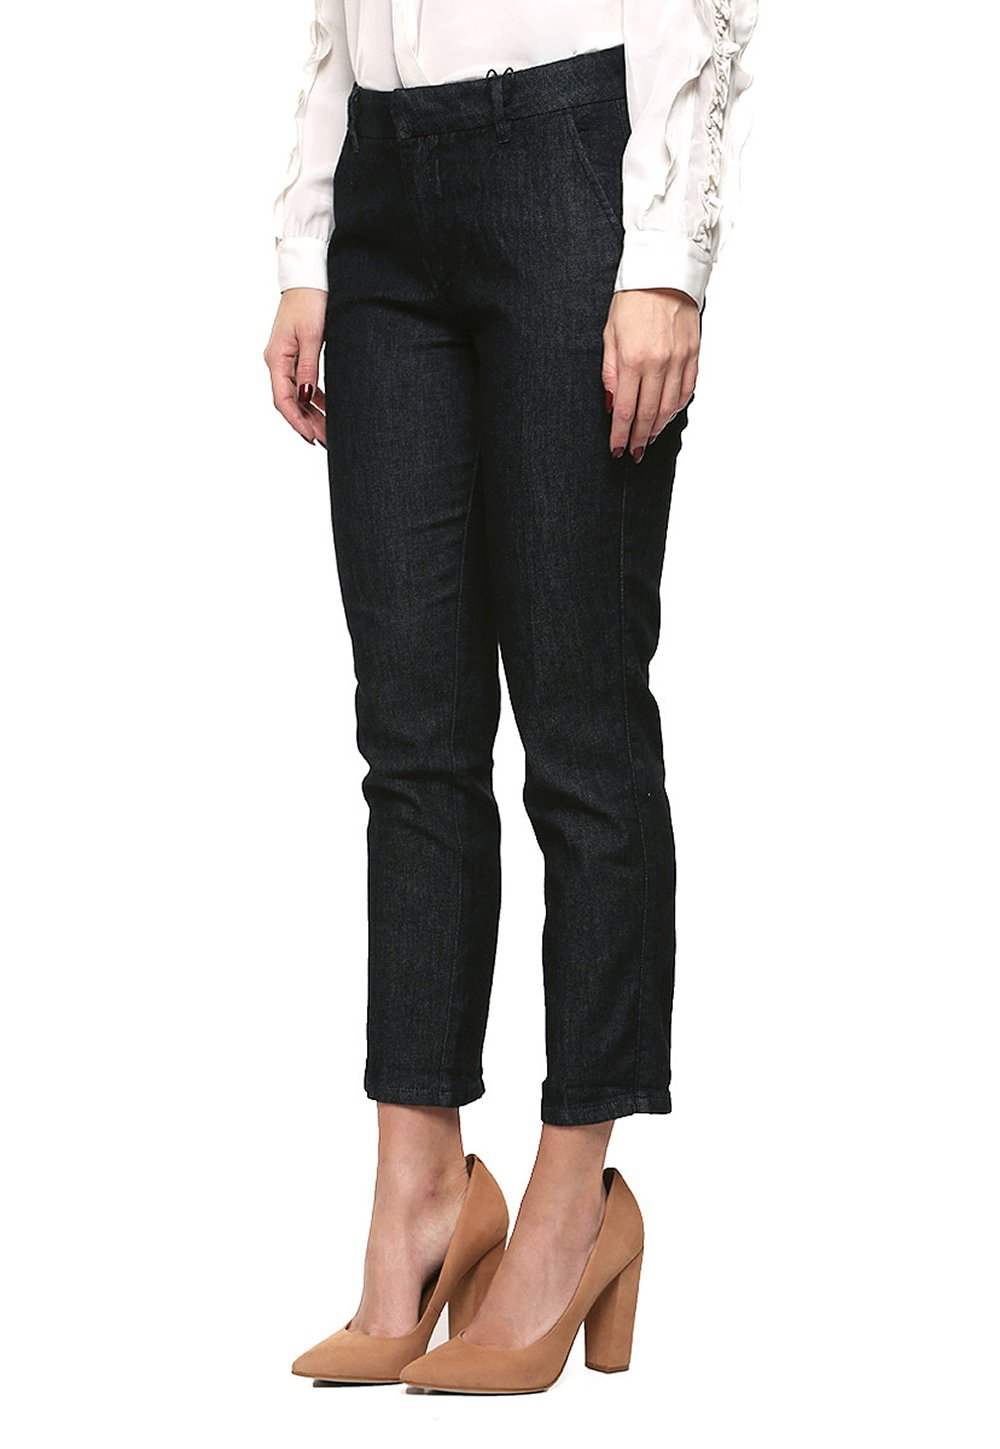 Guess Women's Tailored Cigarette Skinny Jeans (24, Dark Rinse)